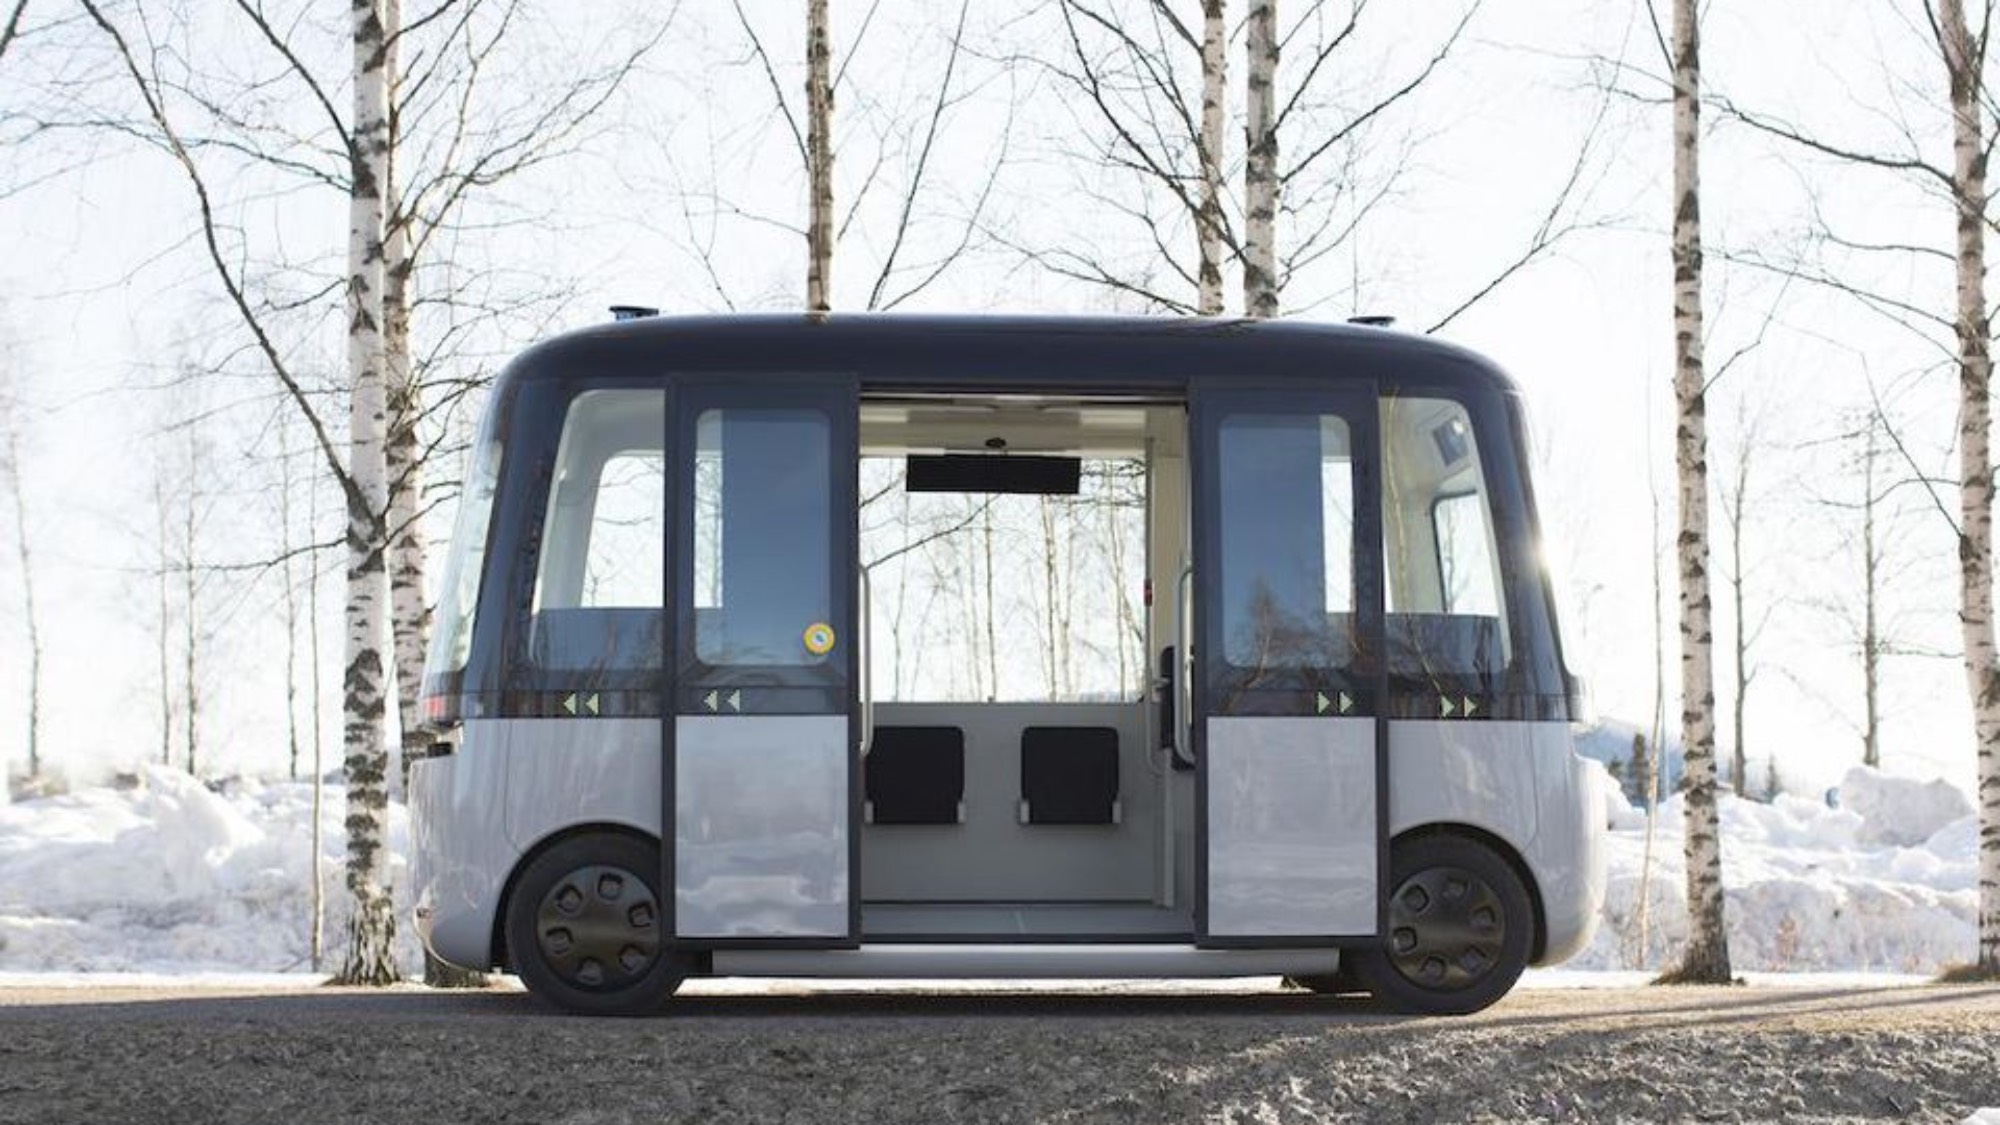 An autonomous shuttle bus with its doors open